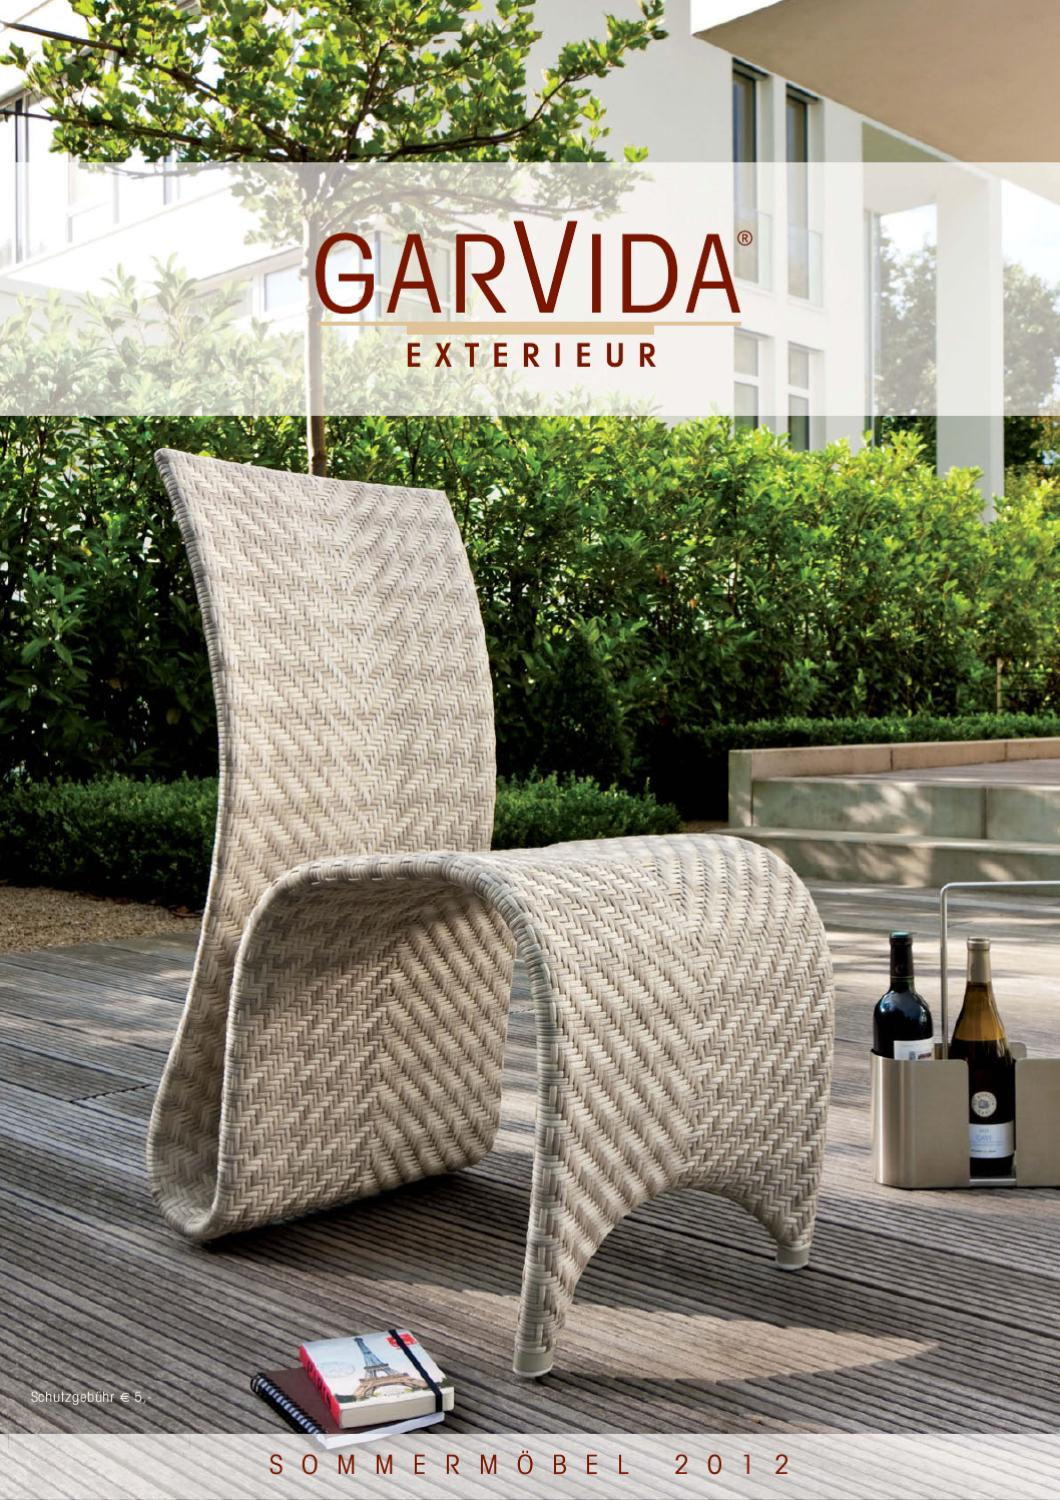 Garvida Garden Furniture Catalog 2012 By Lakbermagazin Issuu